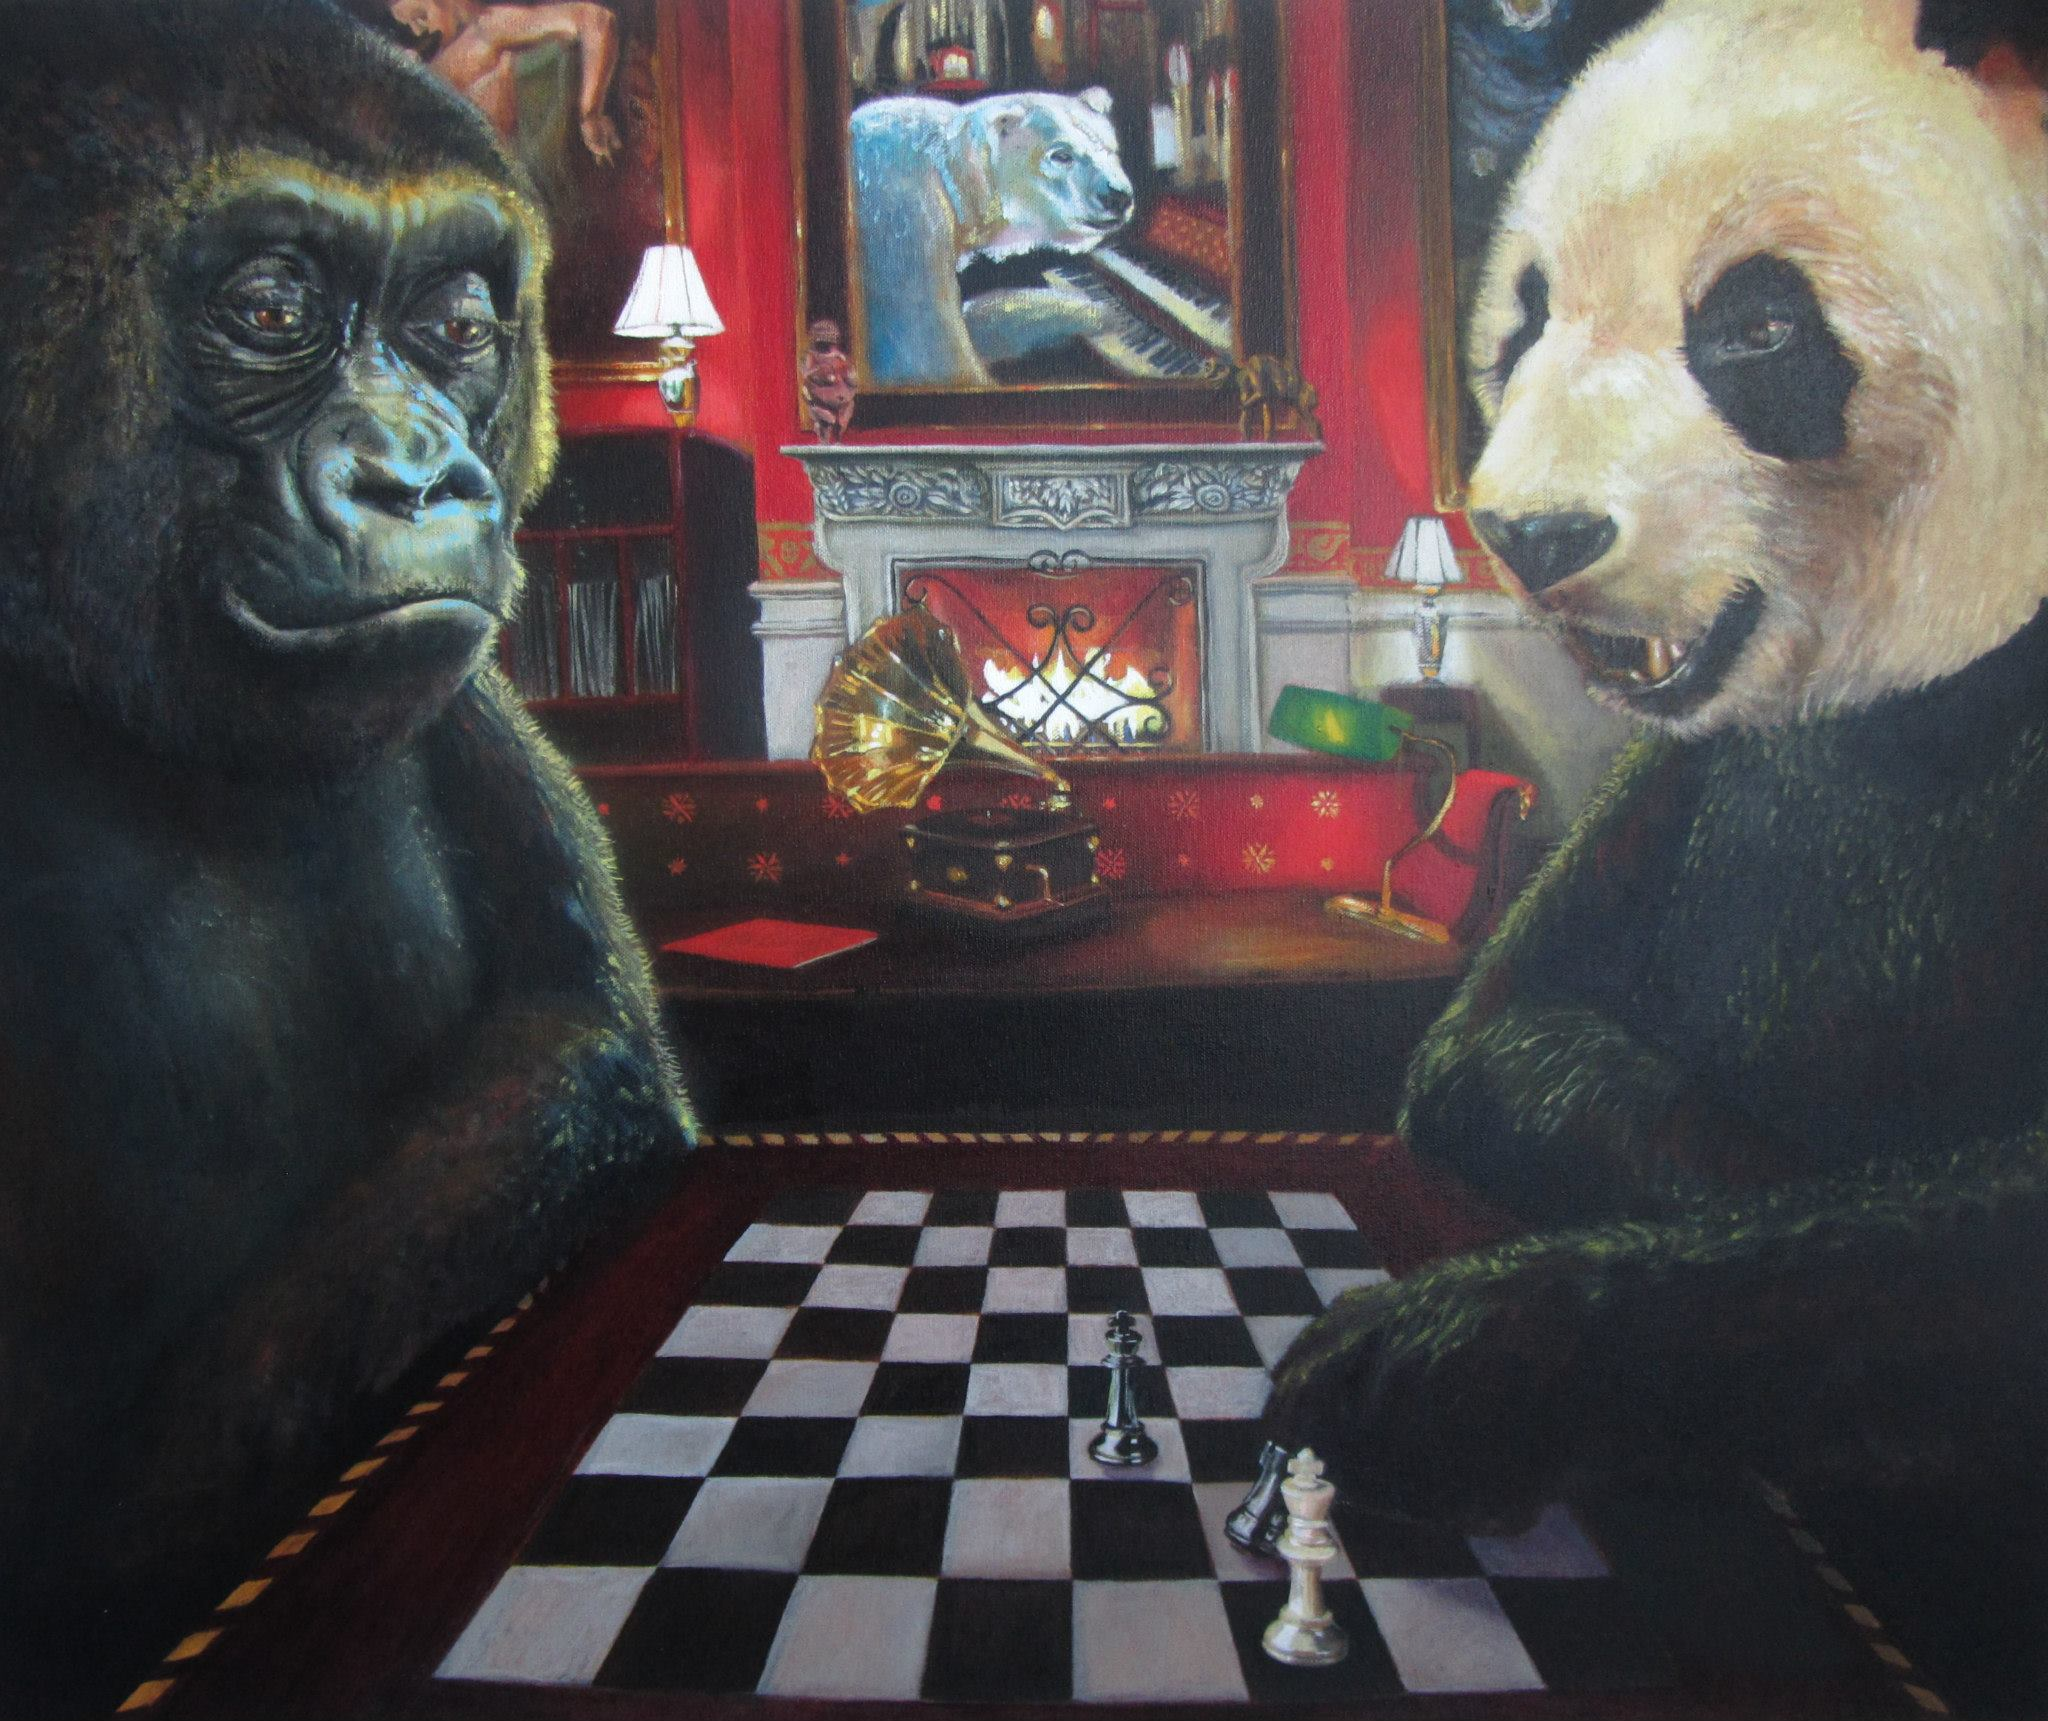 Chess in the Red Room